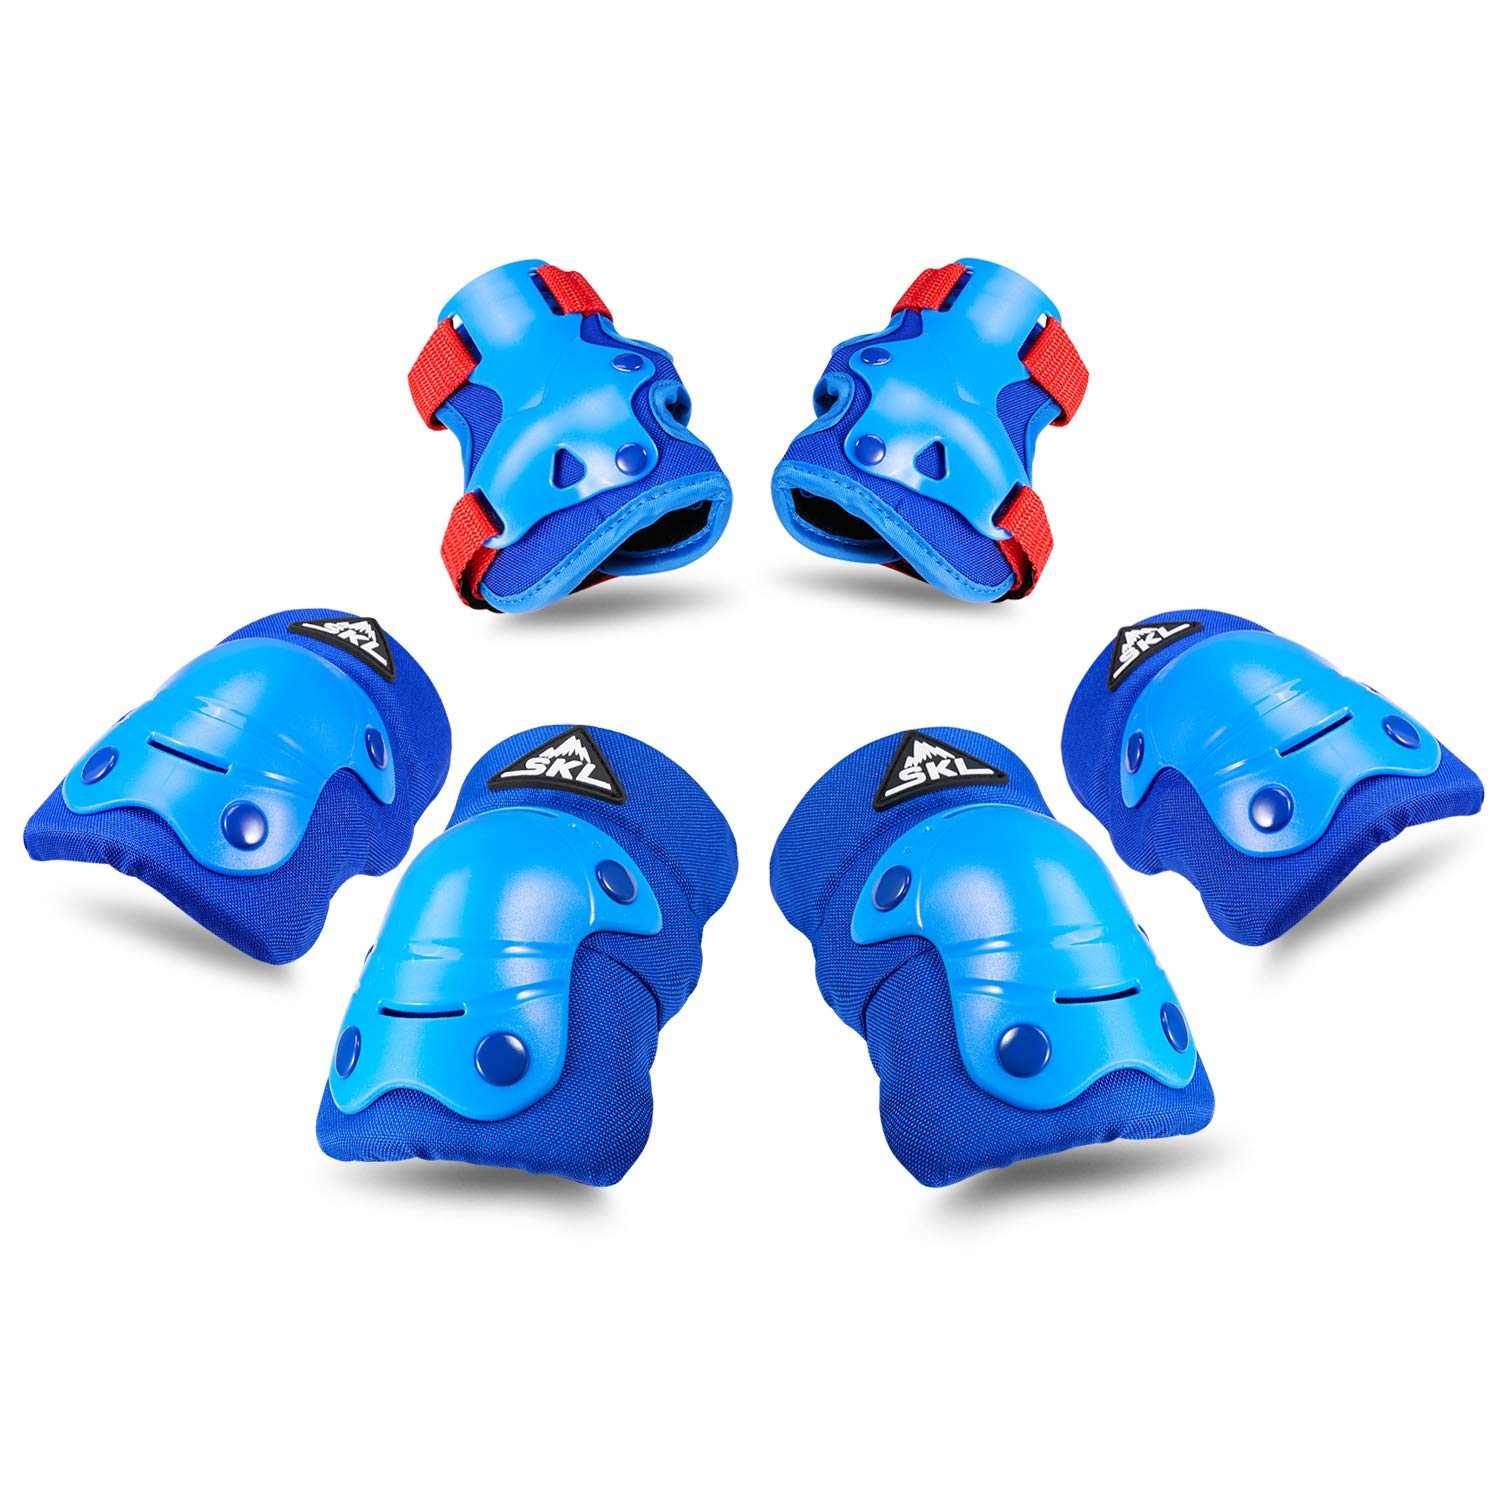 SKL Kids Knee Pads Elbow Pads Wrist Guards 3 in 1 Protective Gear Set for Multi Sports Outdoor Activities Mens Cycling Helmet - Blue by S.K.L